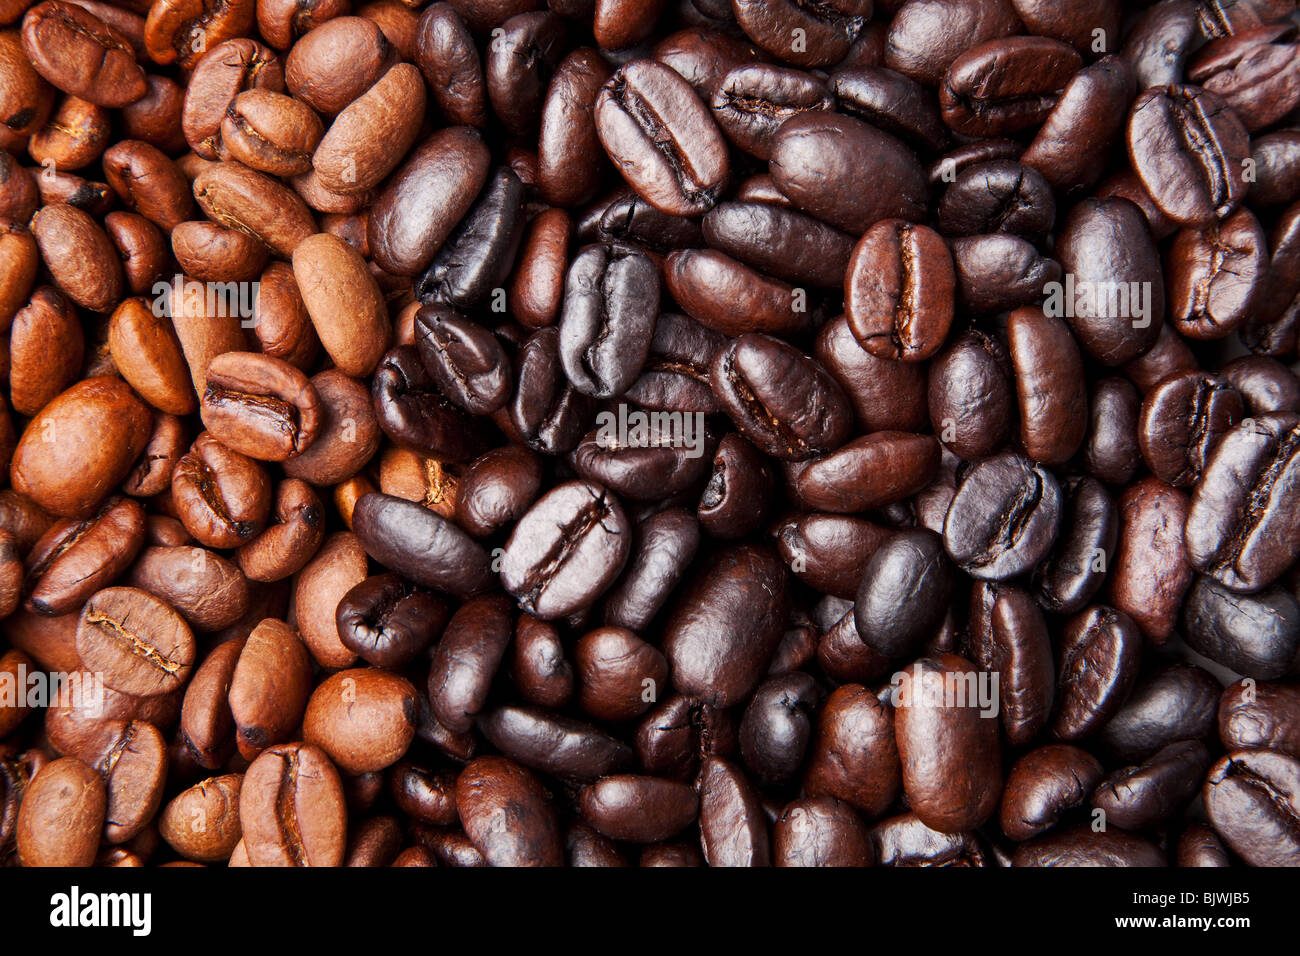 coffee bean background with light and dark roast - Stock Image